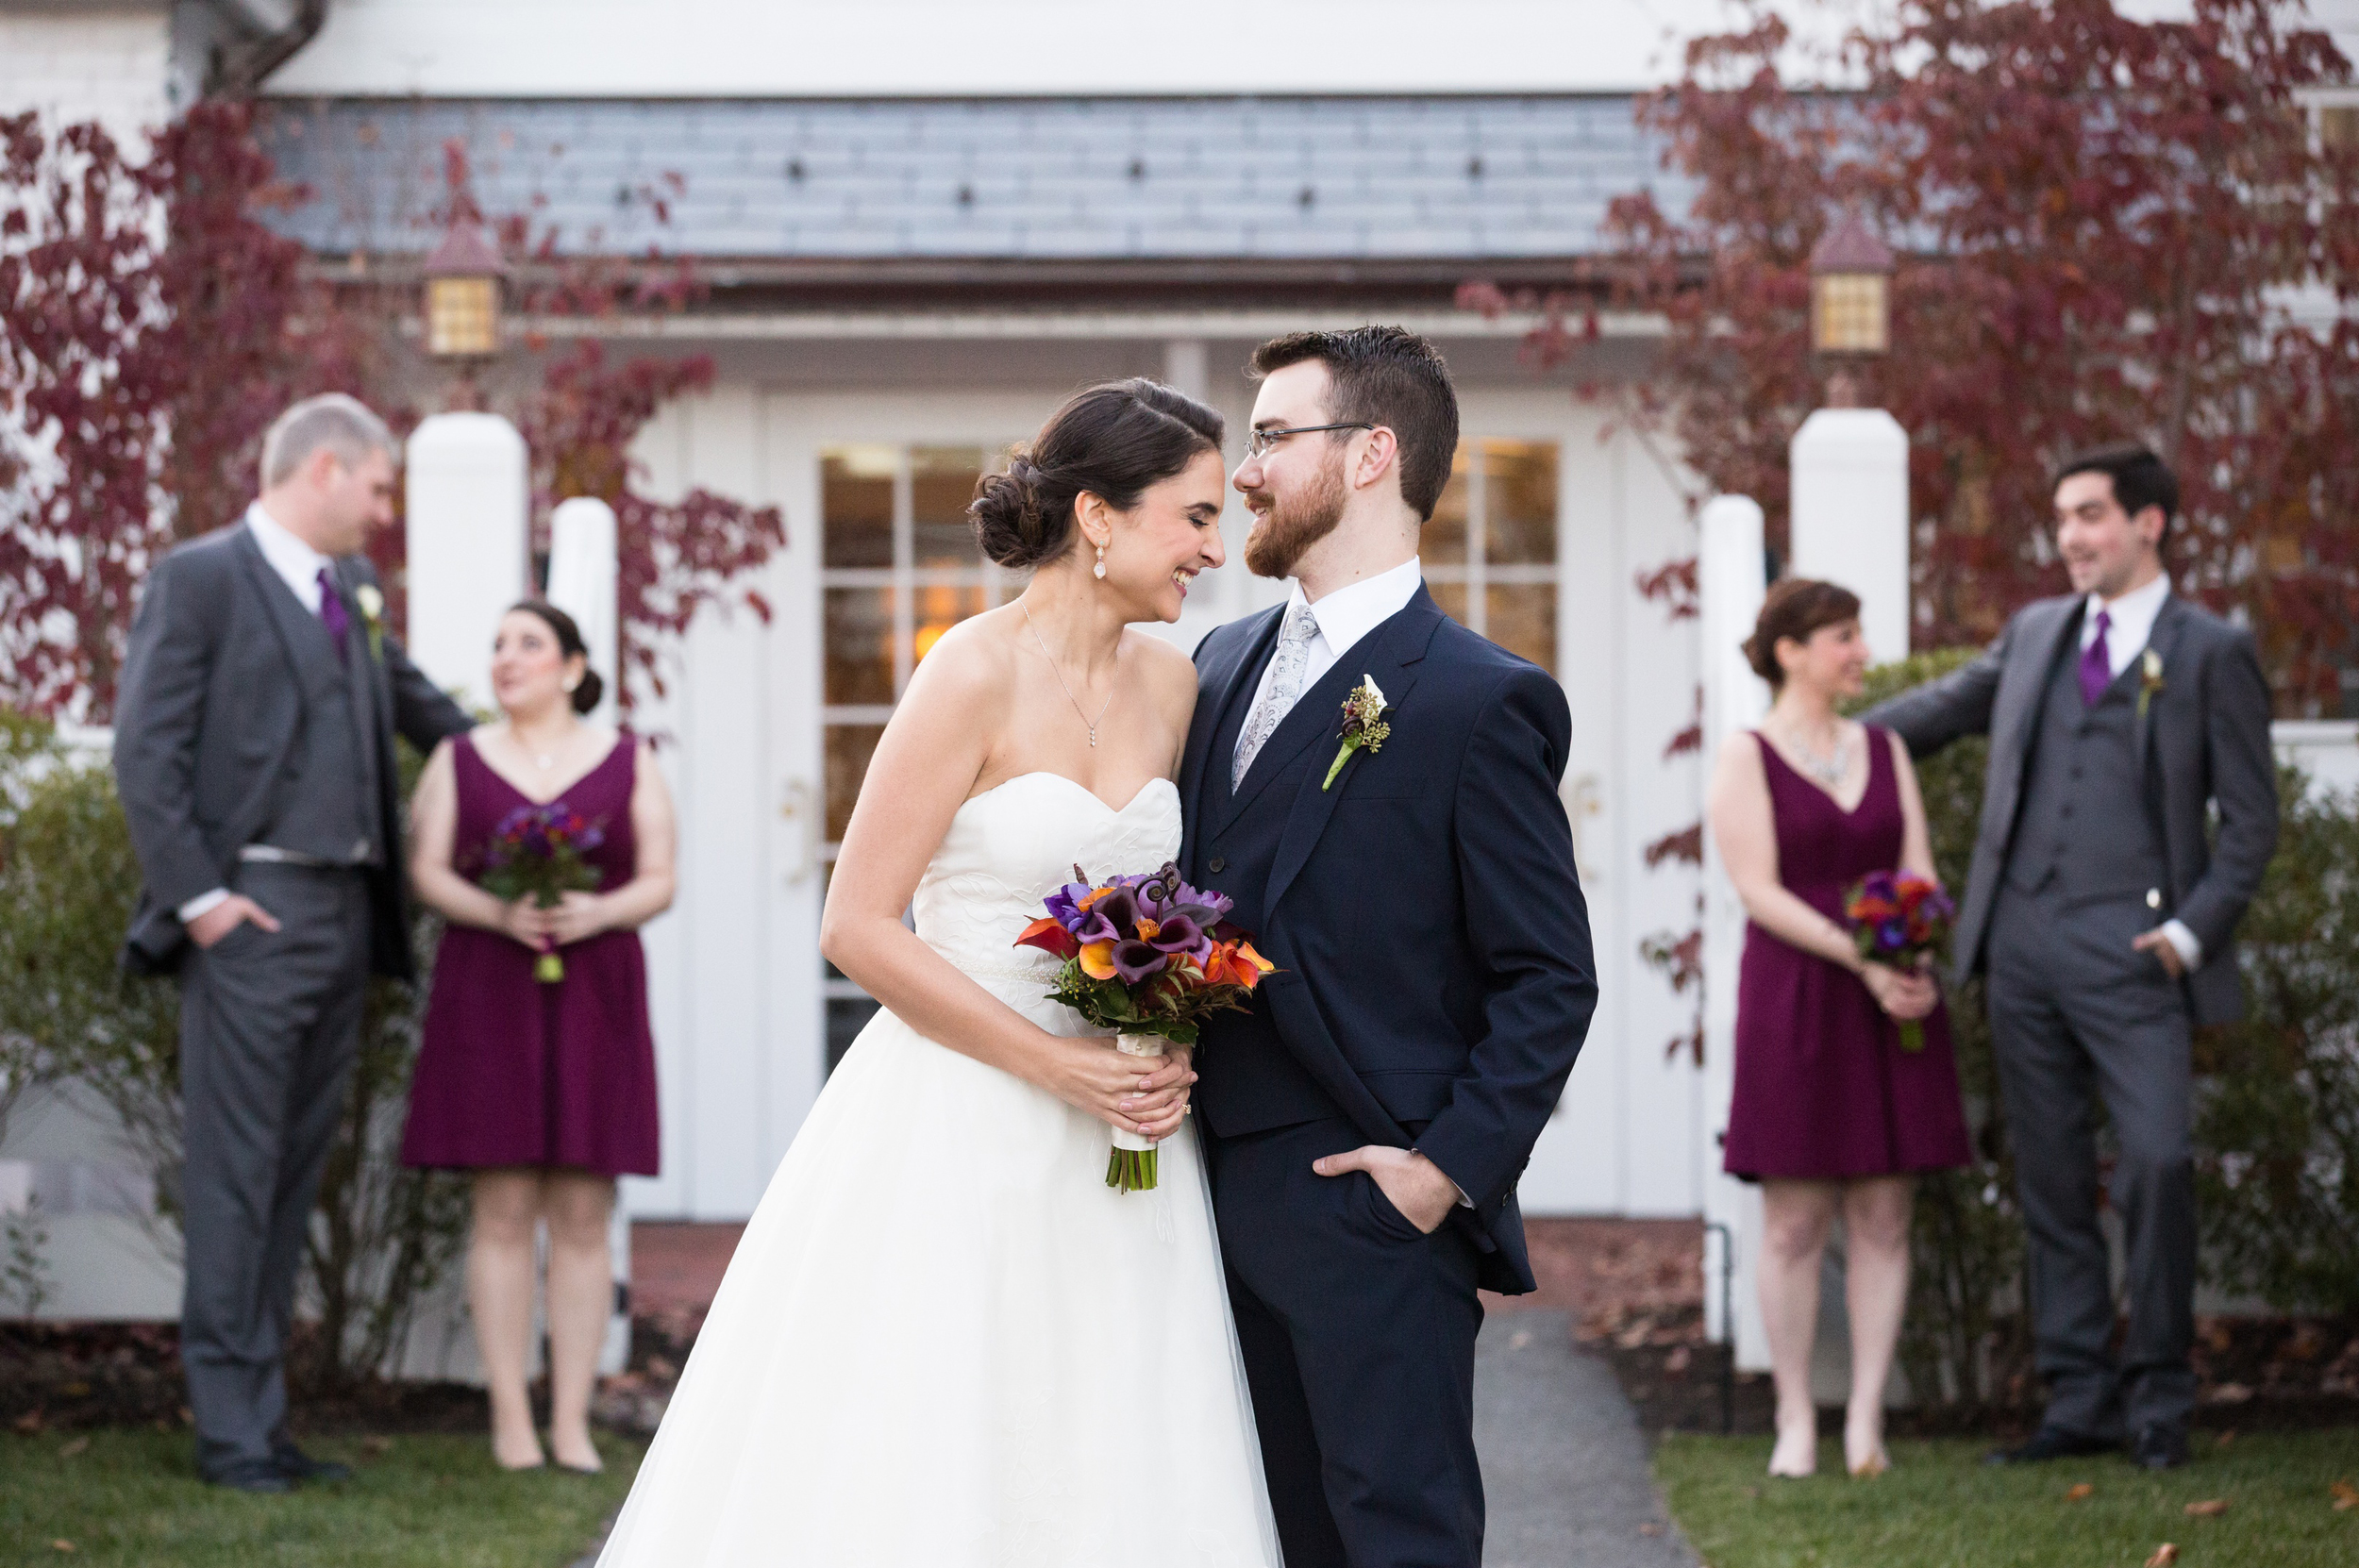 LordJefferyInnWedding_AmherstMa_MichelleGirardPhotography22b.jpg